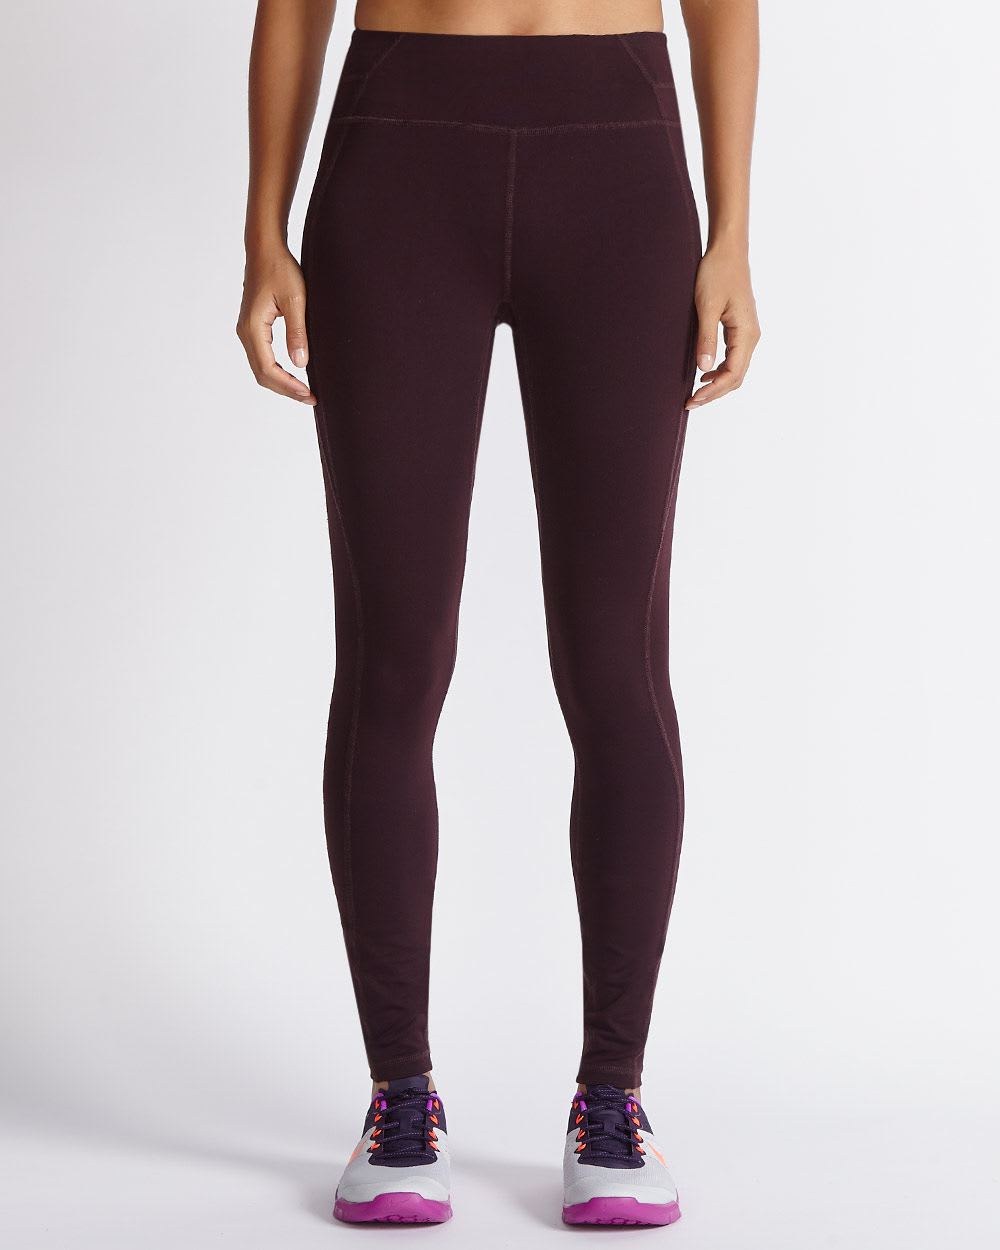 Hyba Performer Legging